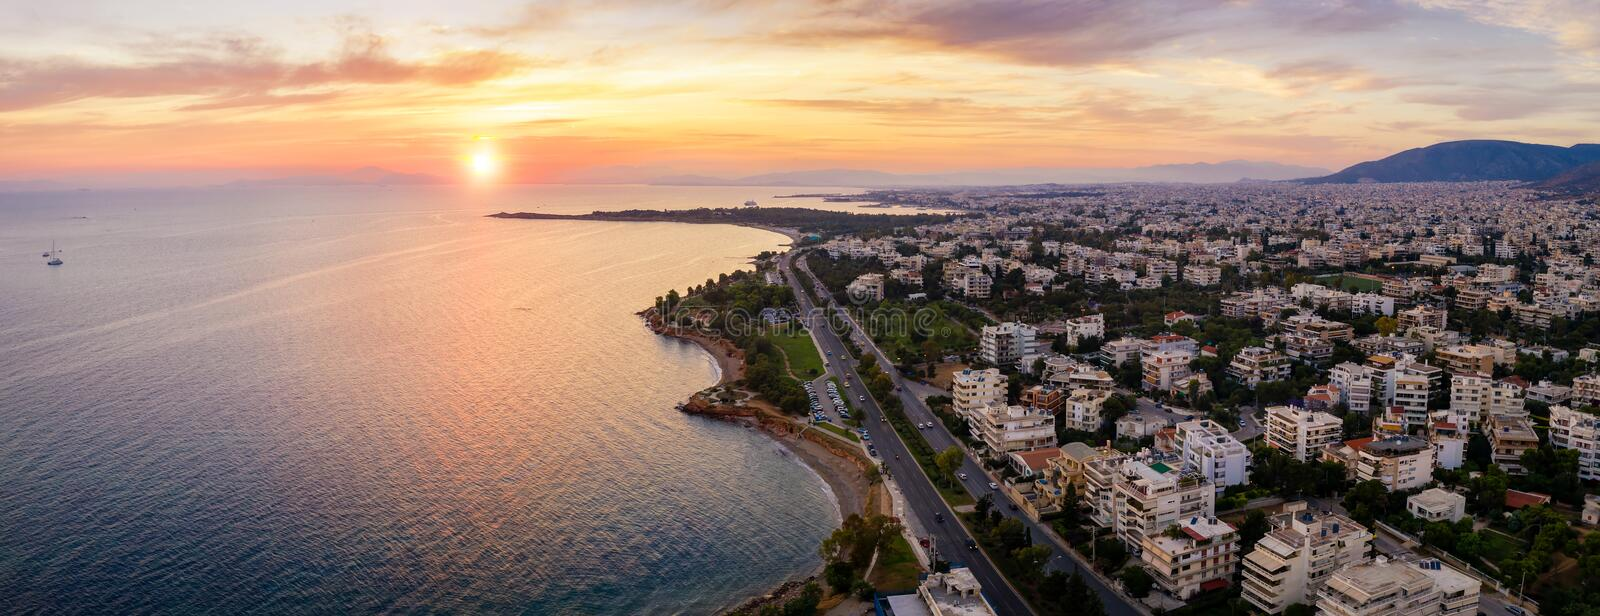 The beautiful Athens Riviera coast, Attica, Greece. The beautiful Athens Riviera coast with beaches and marinas during sunset time, Attica, Greece royalty free stock photography